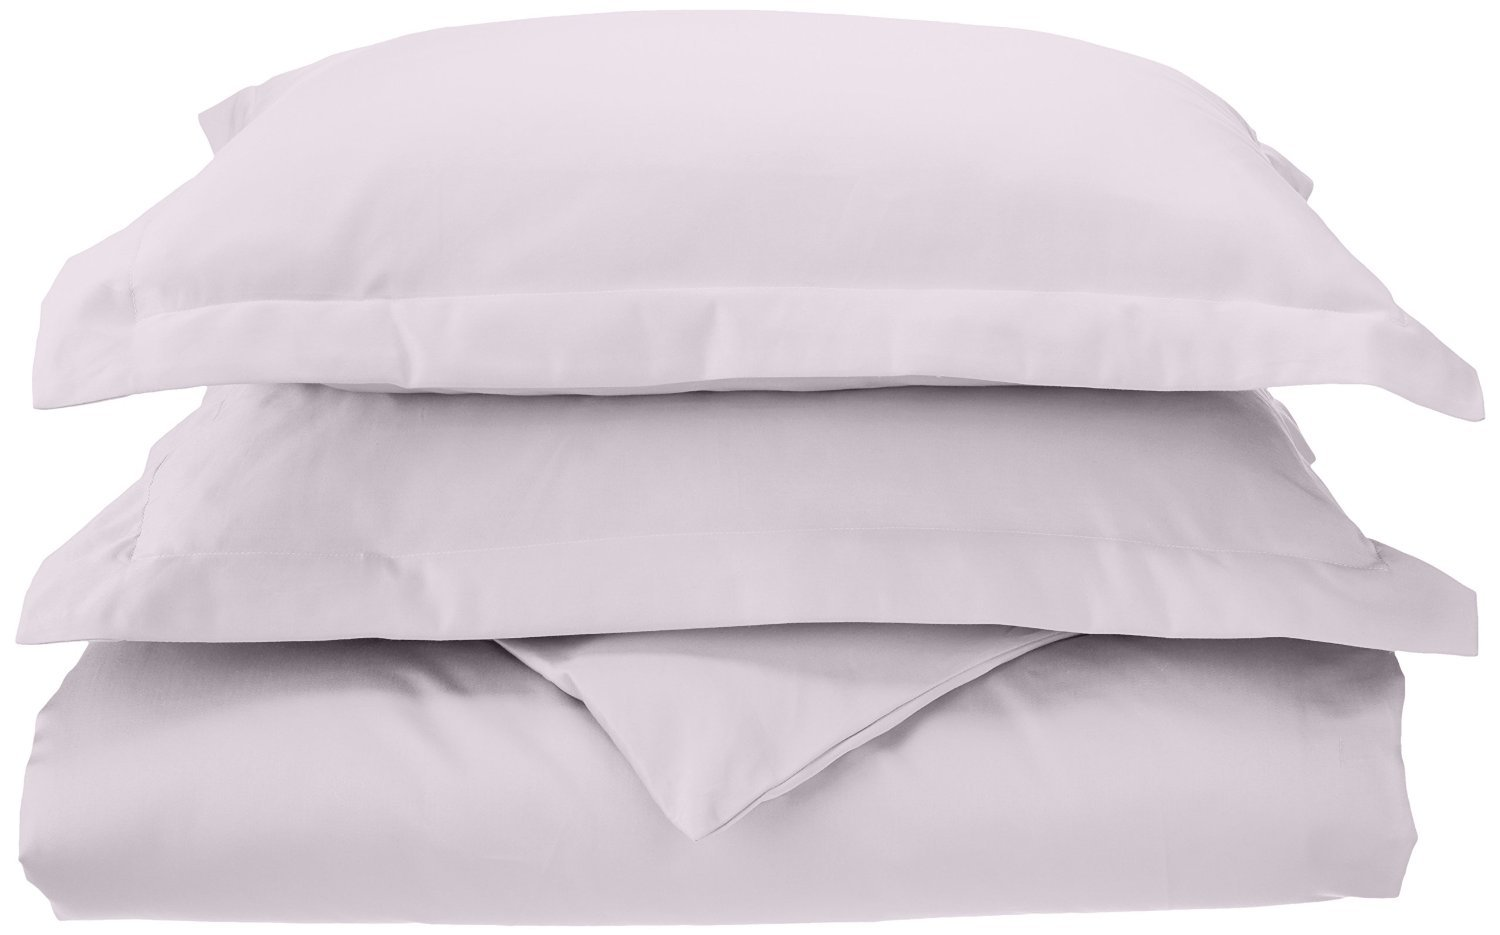 Superior 1000 Thread Count 100% Cotton, Single Ply, 3-Piece Full/Queen Duvet Cover Set, Solid, Charcoal C1000FQDC SLCL